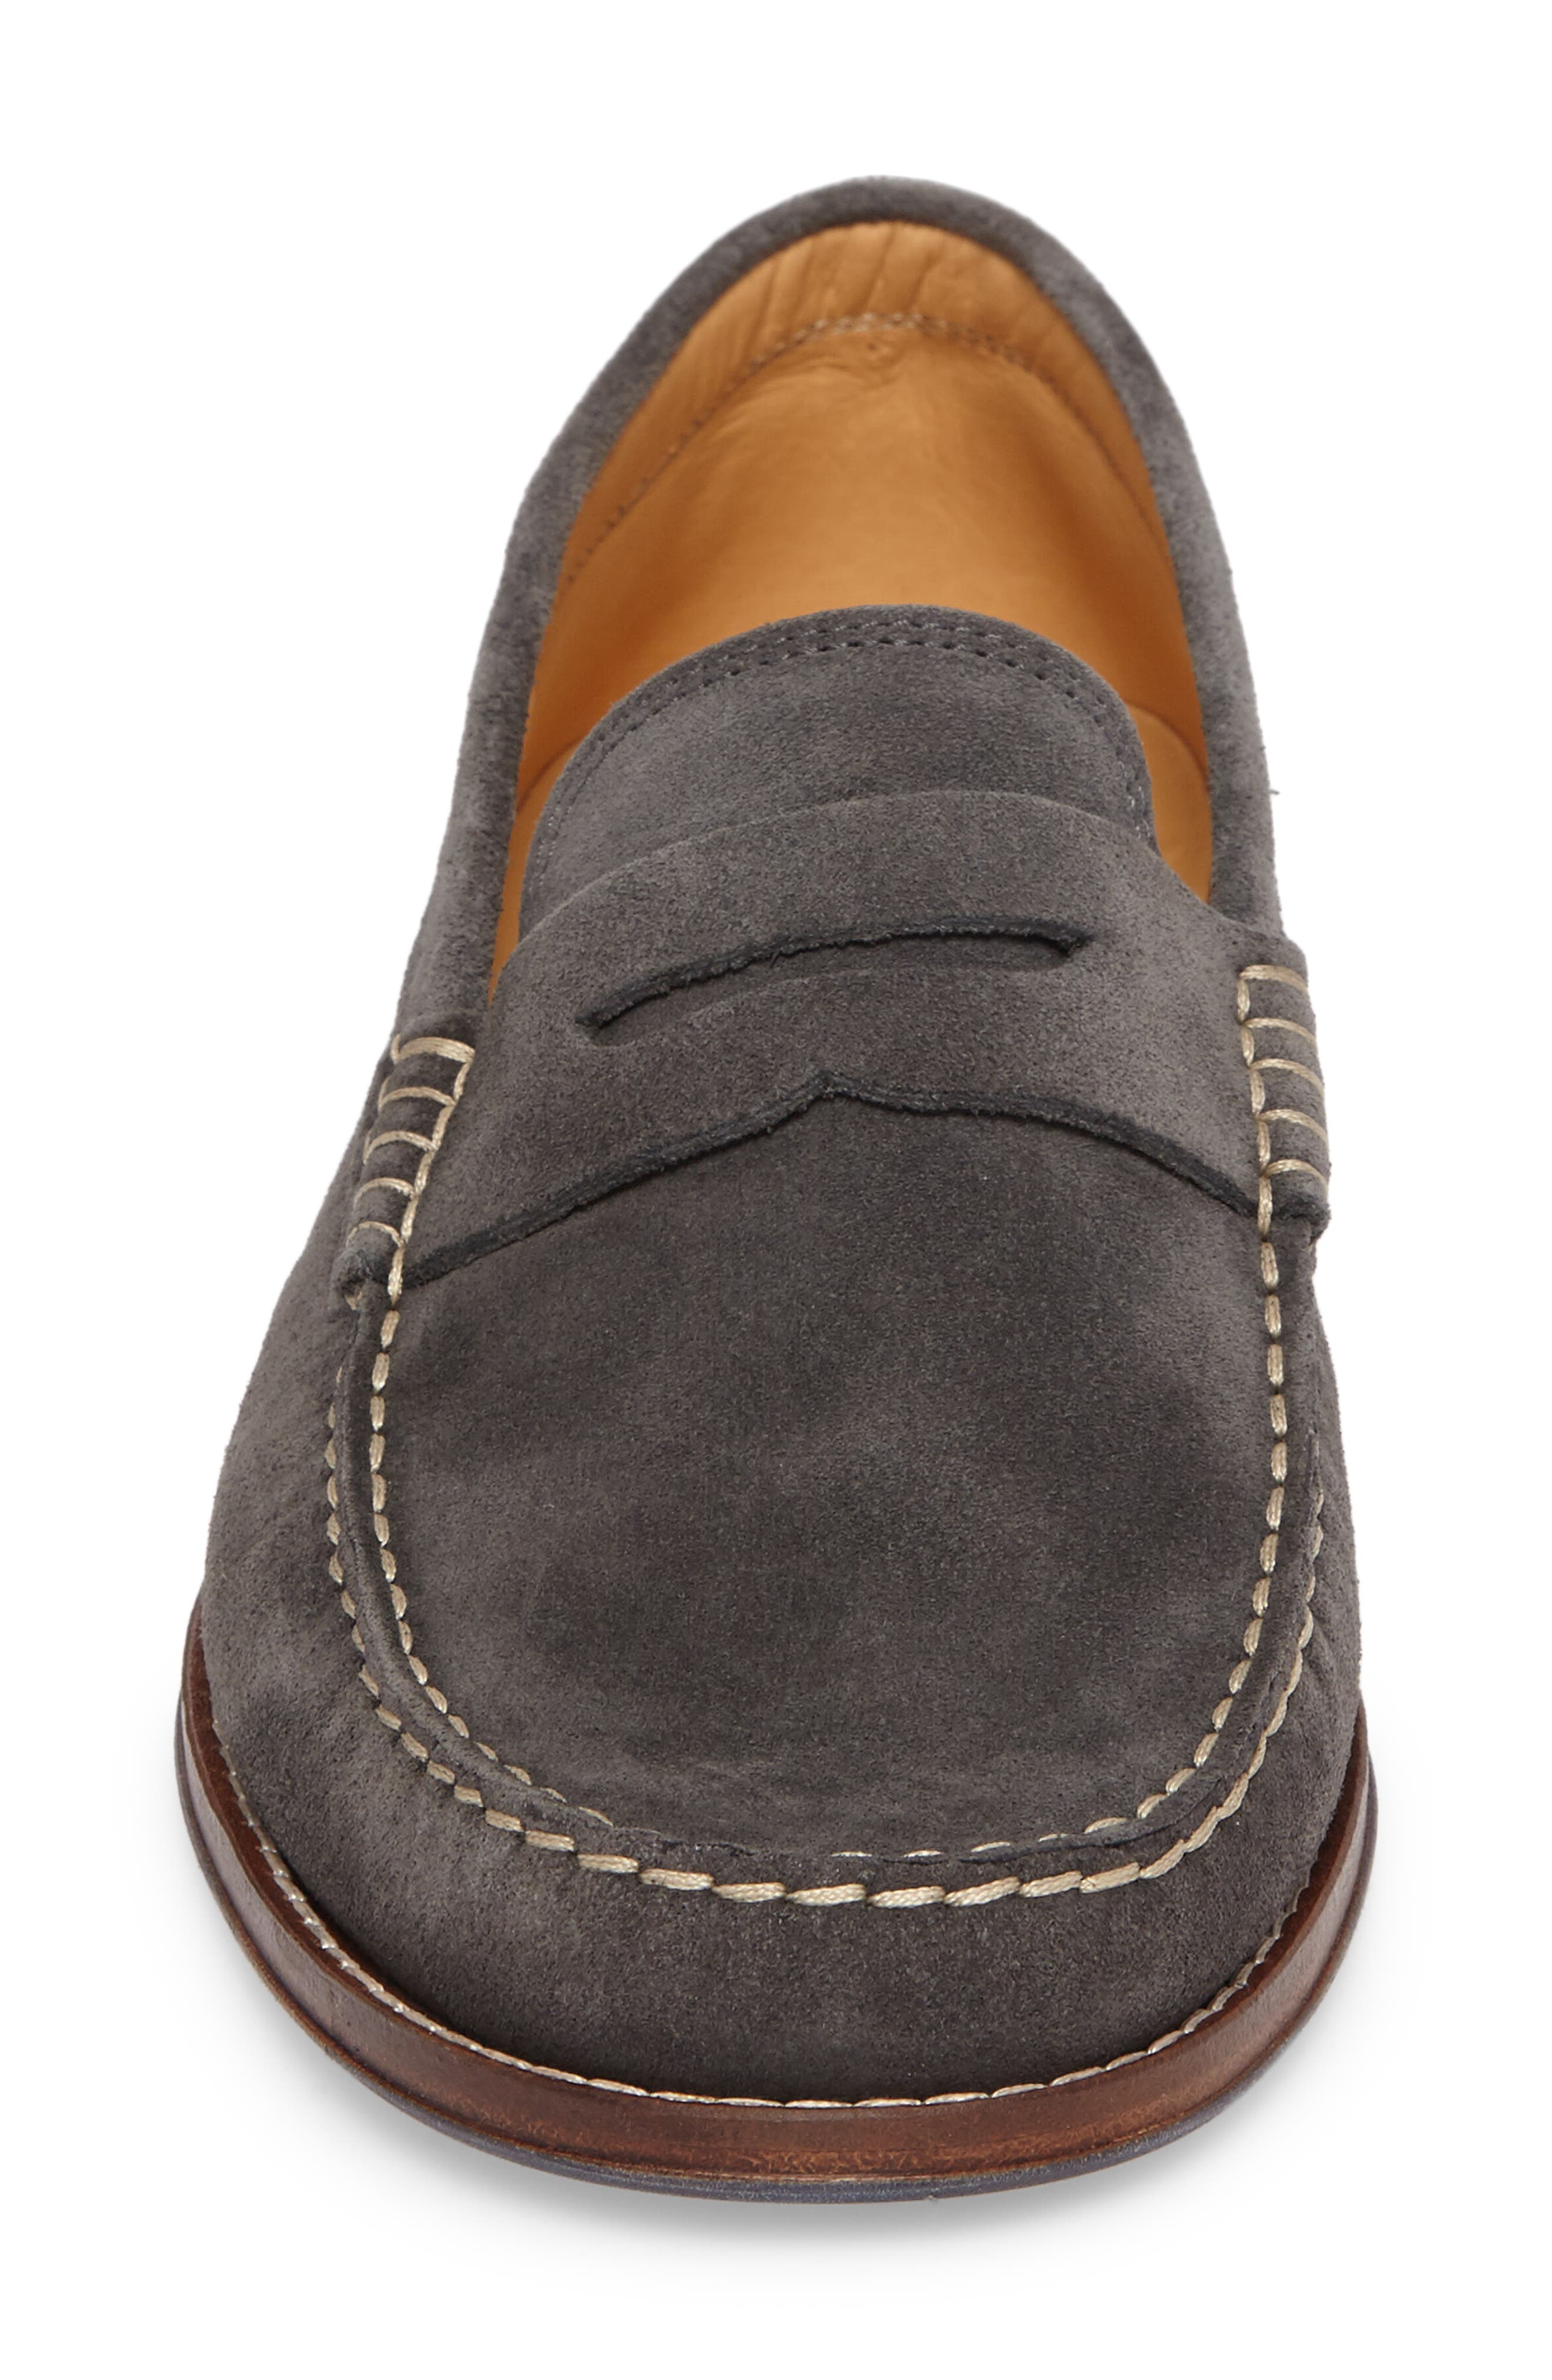 Ripley Penny Loafer,                             Alternate thumbnail 4, color,                             Grey Leather